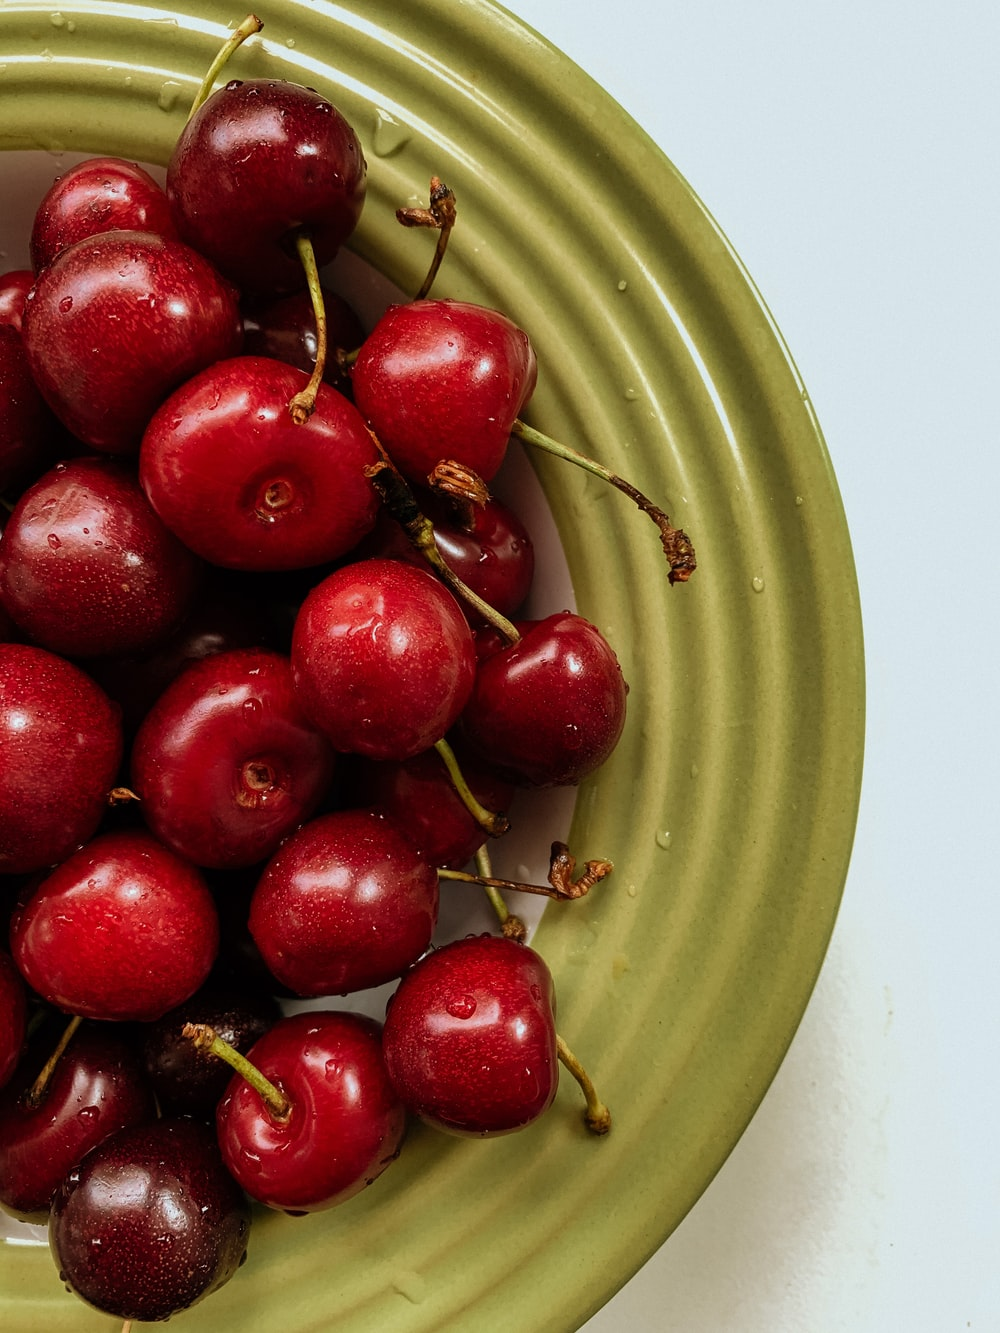 red round fruits on green round plate